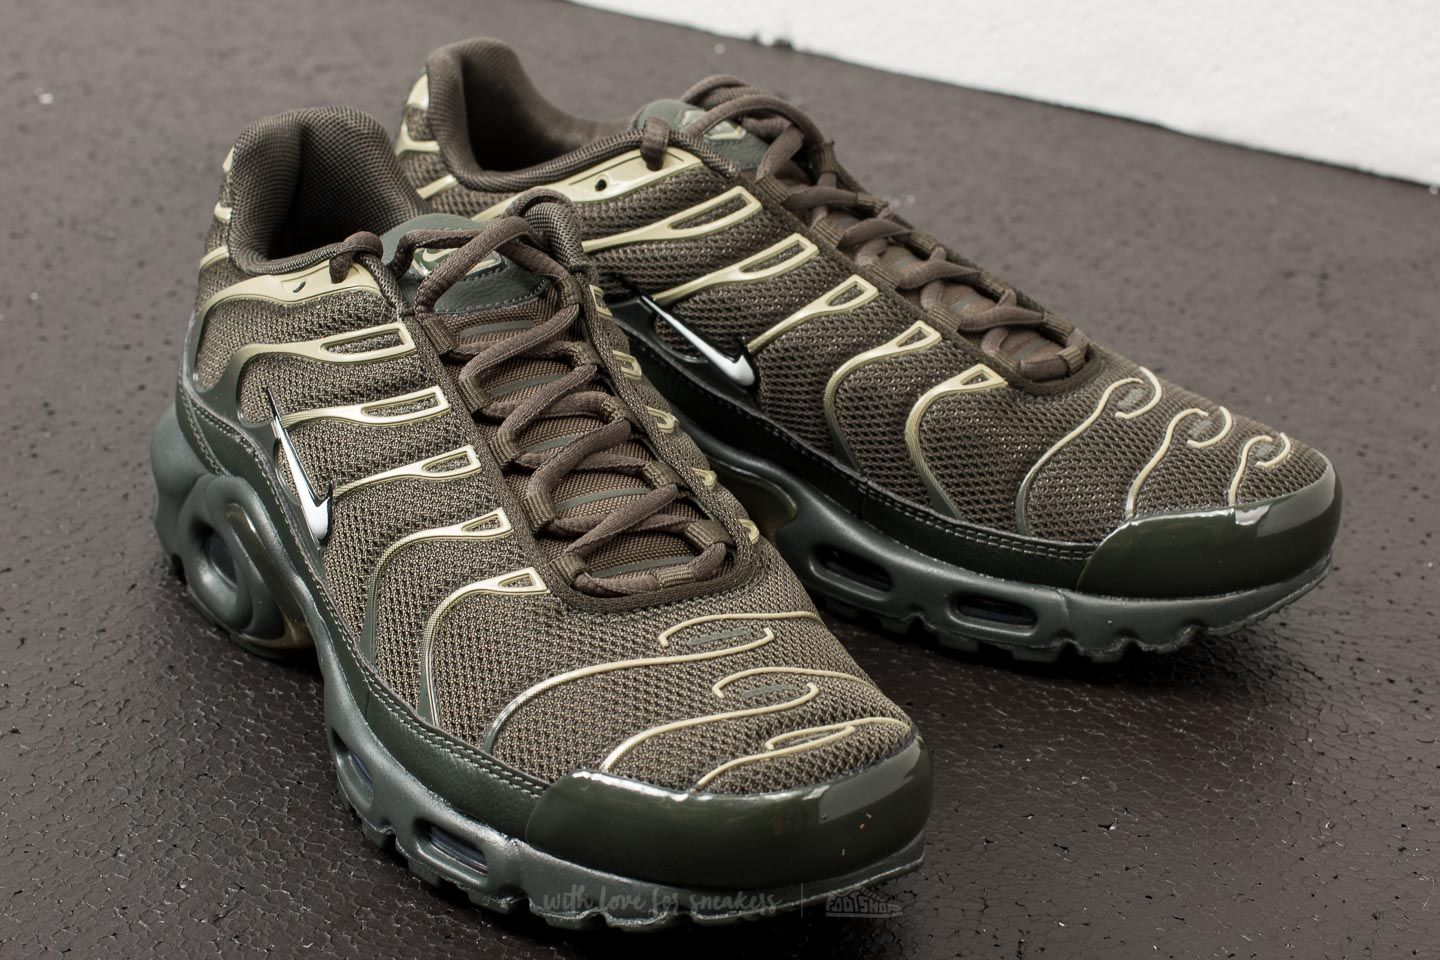 b4bfc4c64d ... Nike Air Max Plus Sequoia White-Netural Olive at a great price 158 ...